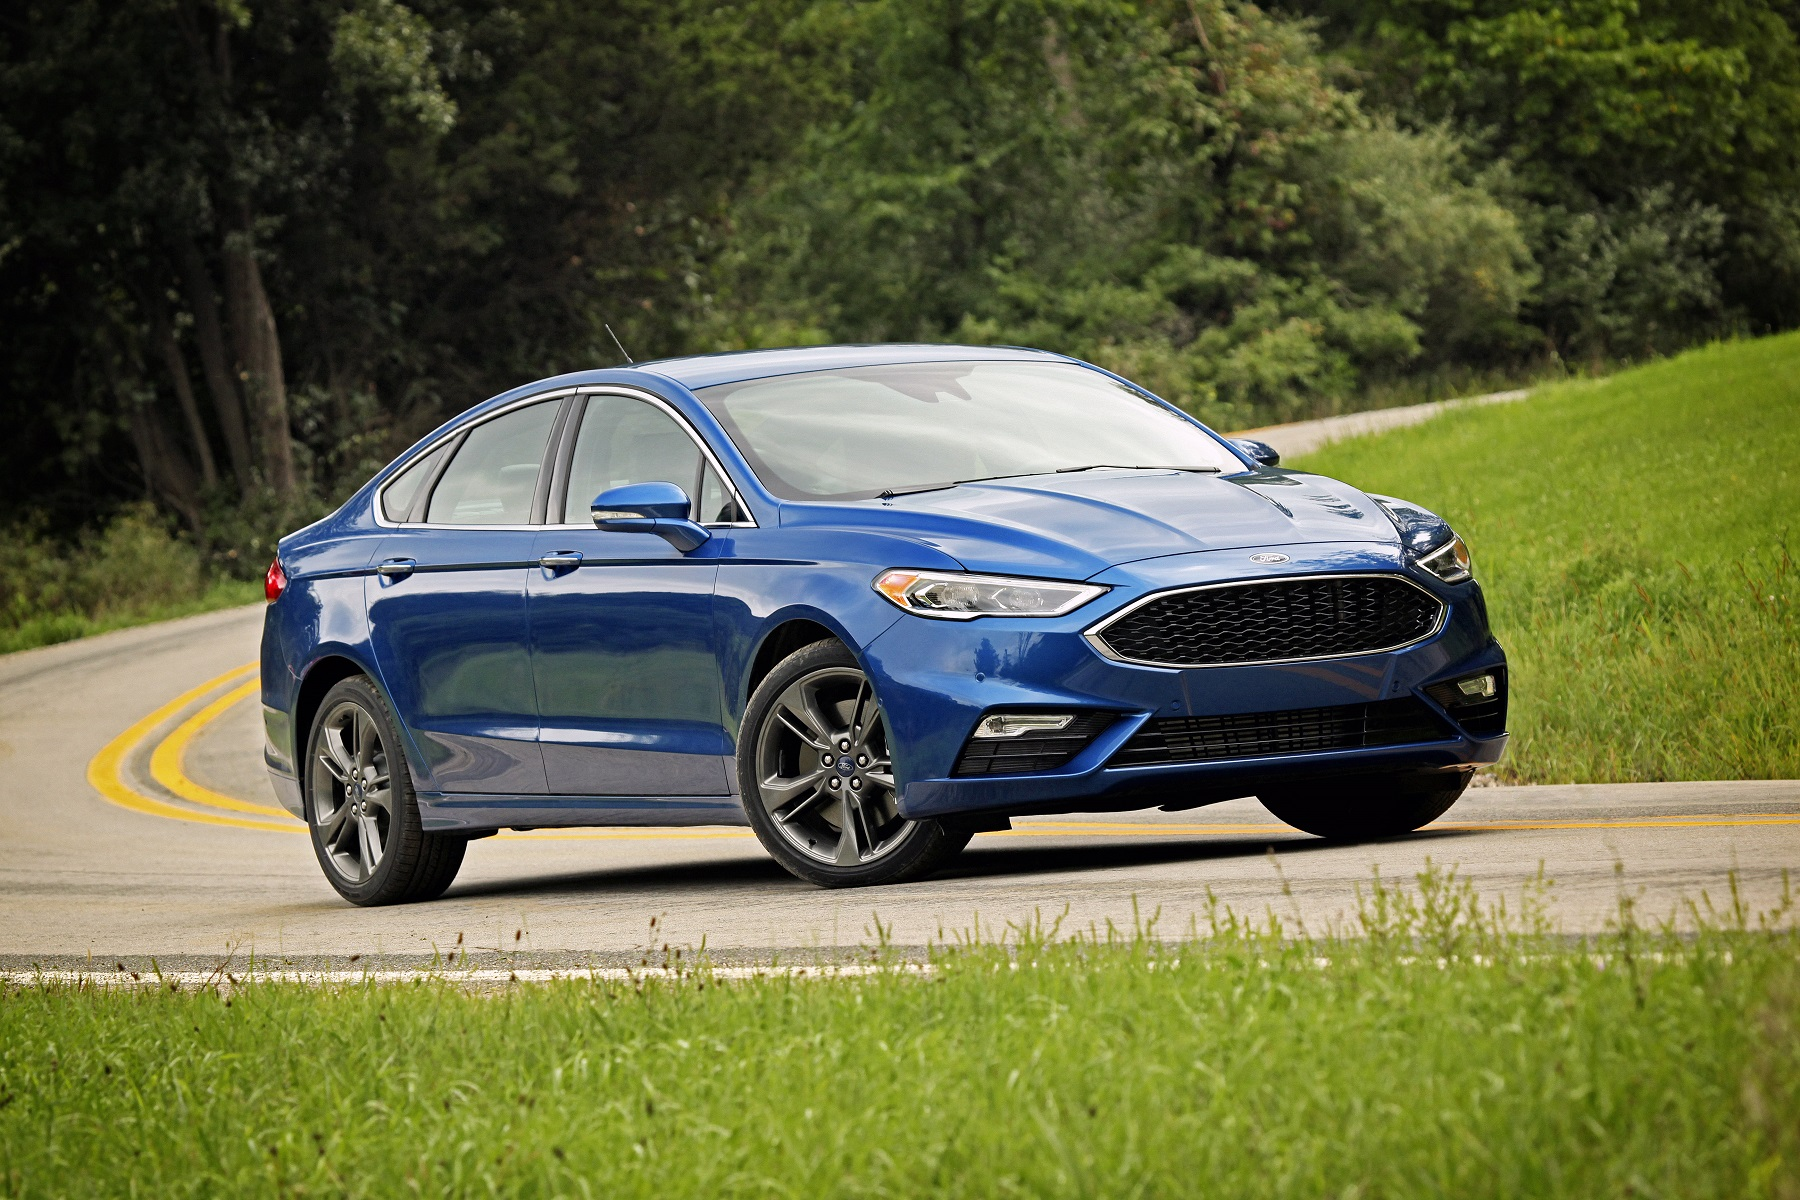 Distinguishing its outward appearance are revised front styling with larger air intakes and a gloss-black mesh grille to inform left-lane hogs this is the ...